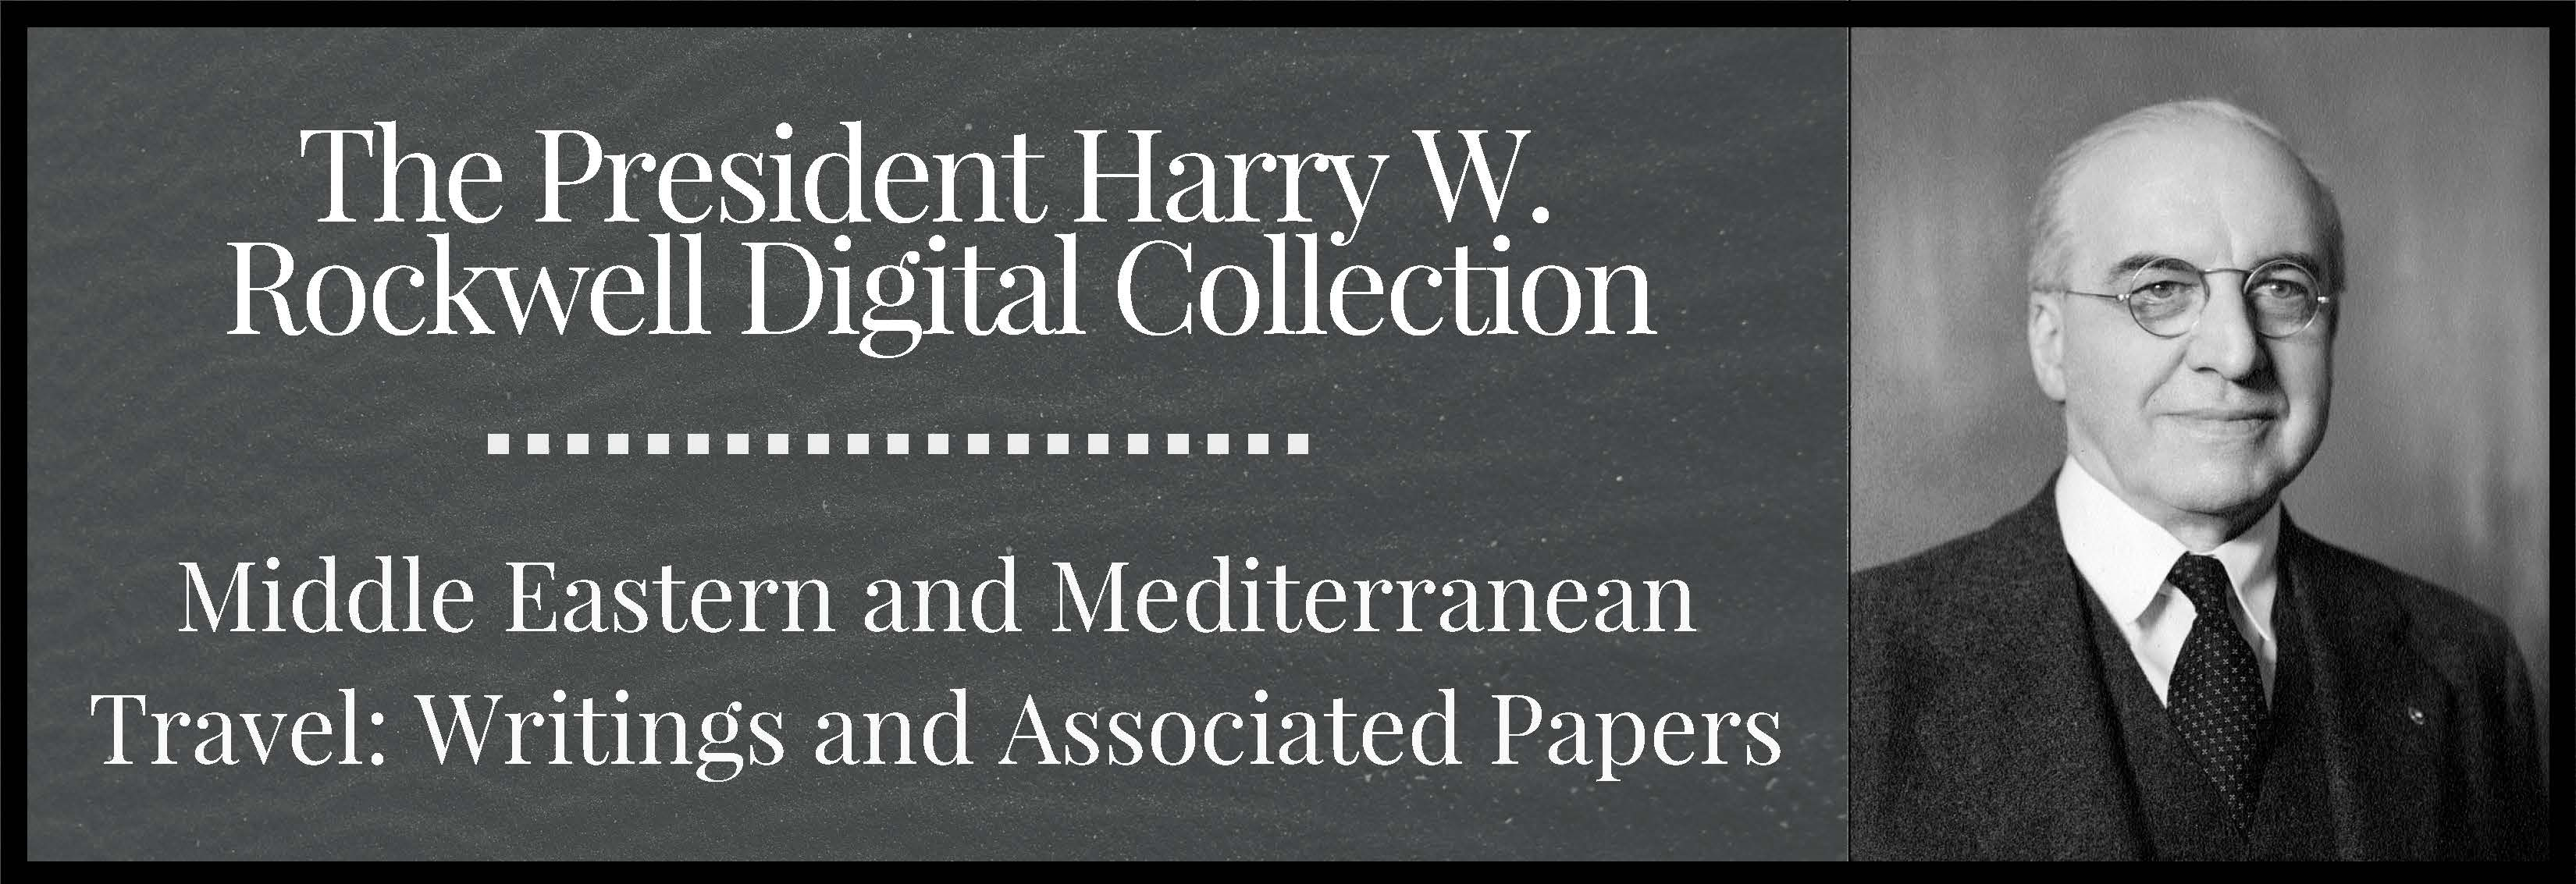 Writings, Newspapers, and Associated Papers